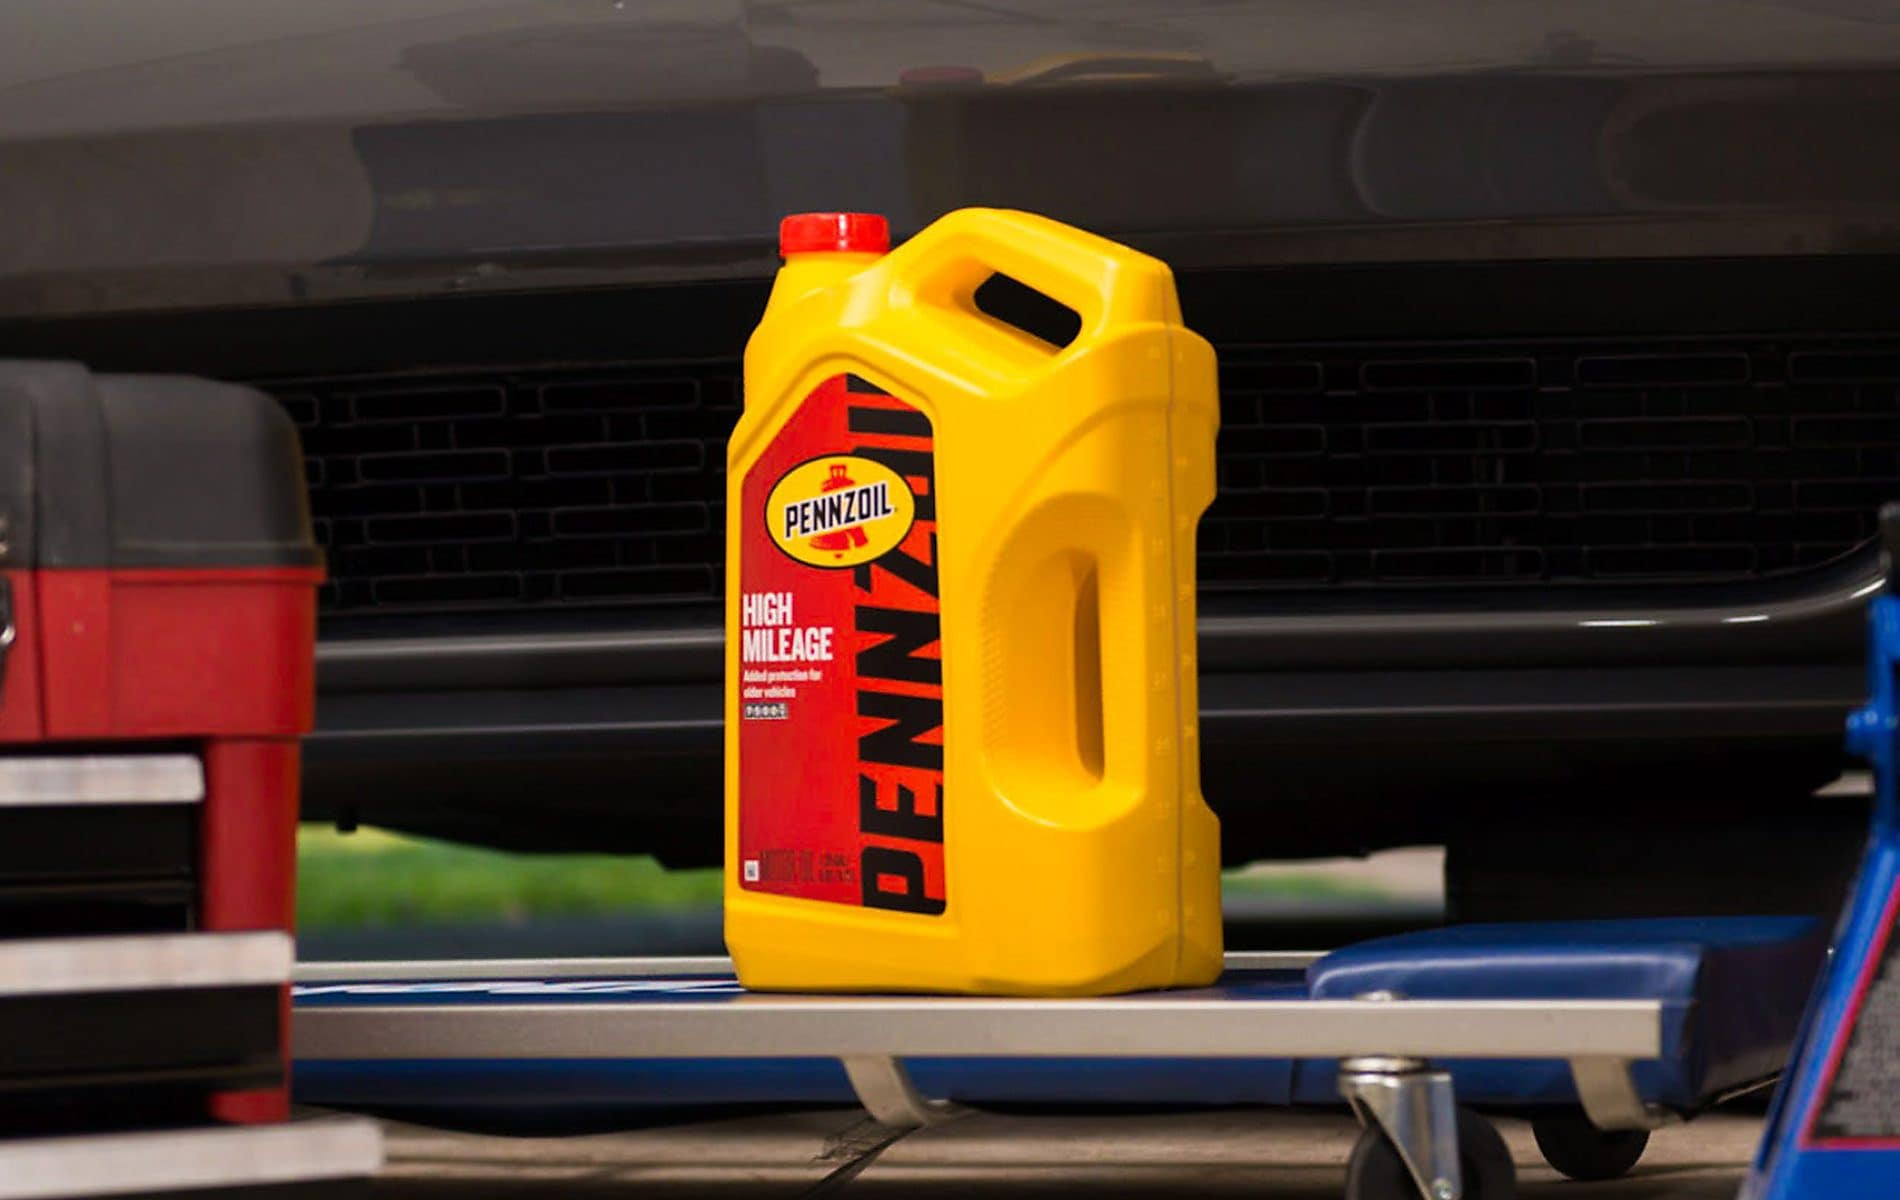 Pennzoil High Mileage